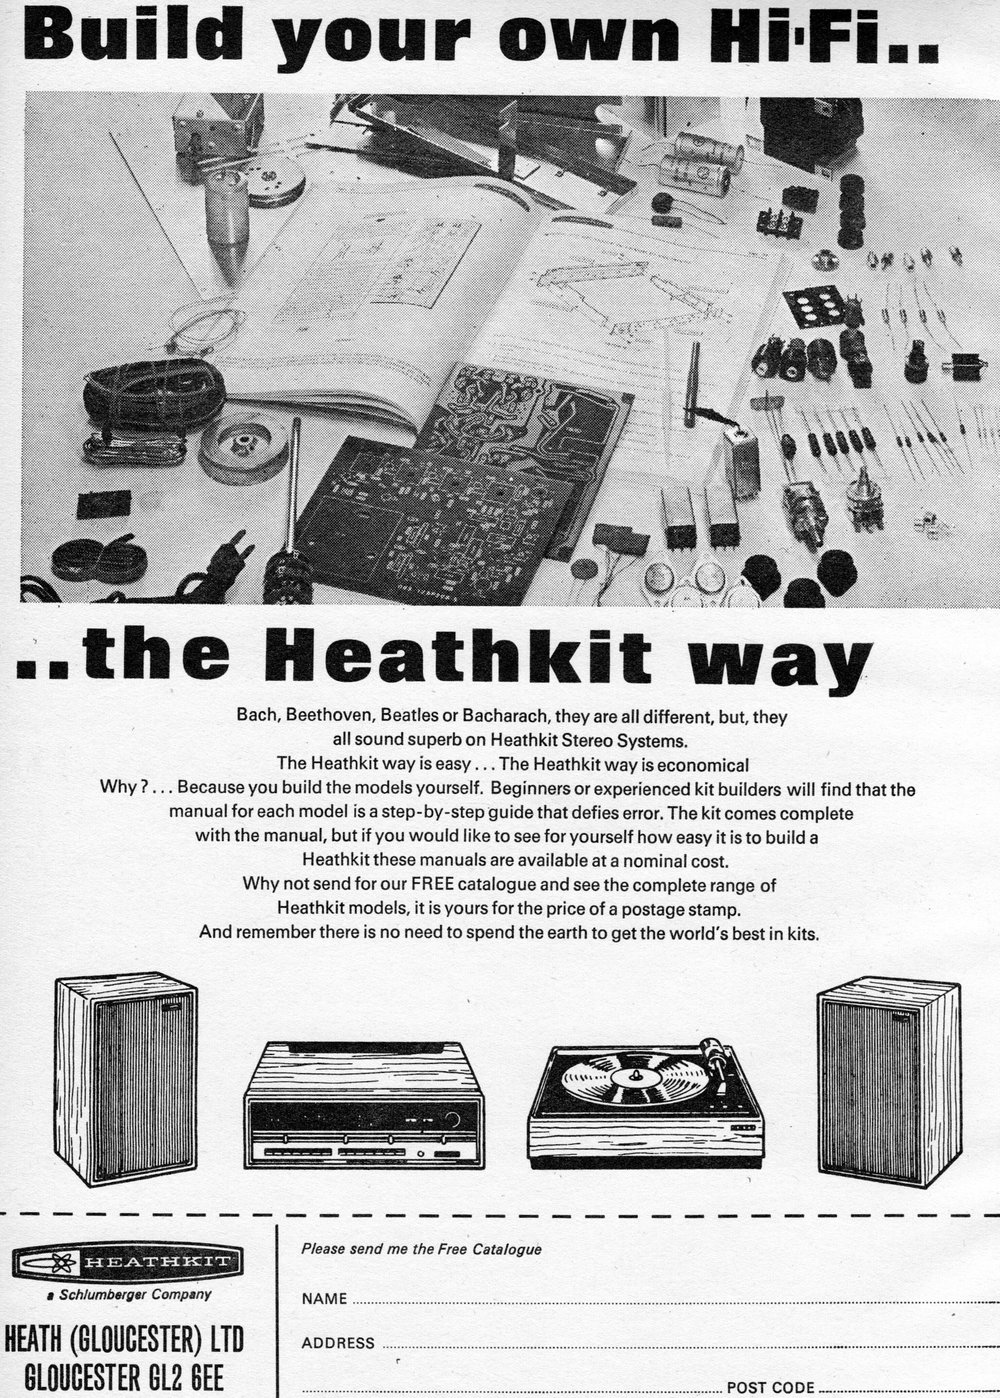 Heathkit Advert 1971.jpg